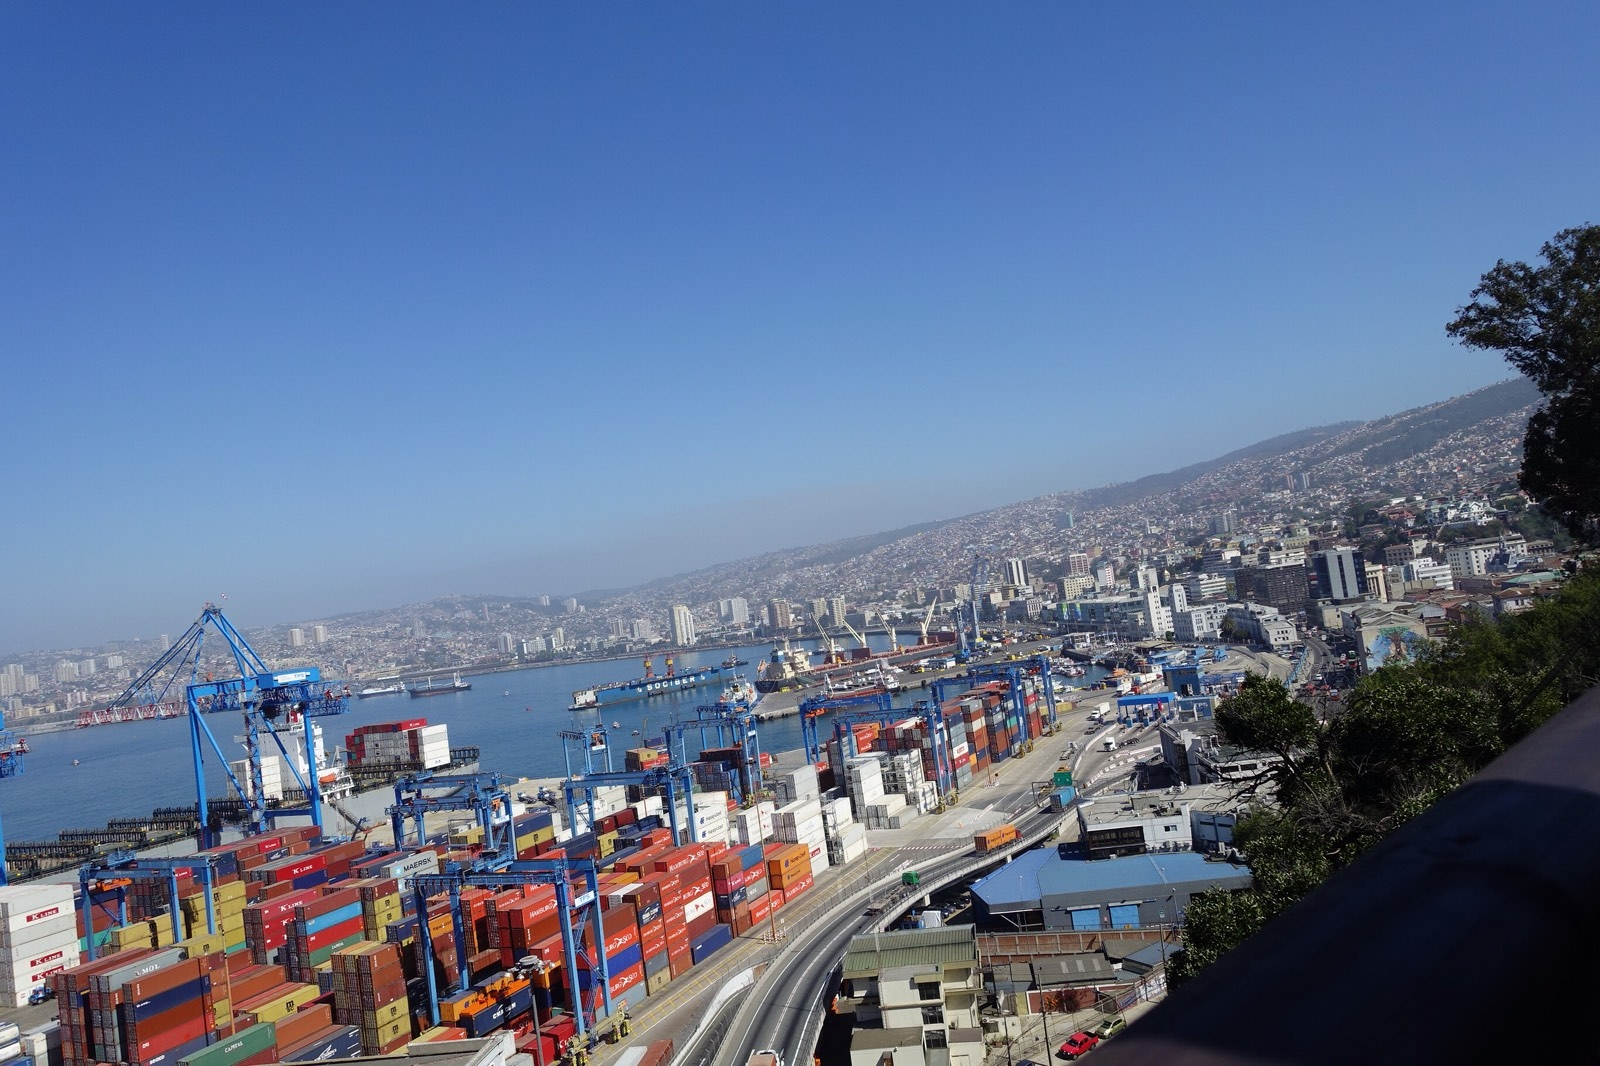 Container port, old town, new town, maybe Viña del Mar and points beyond